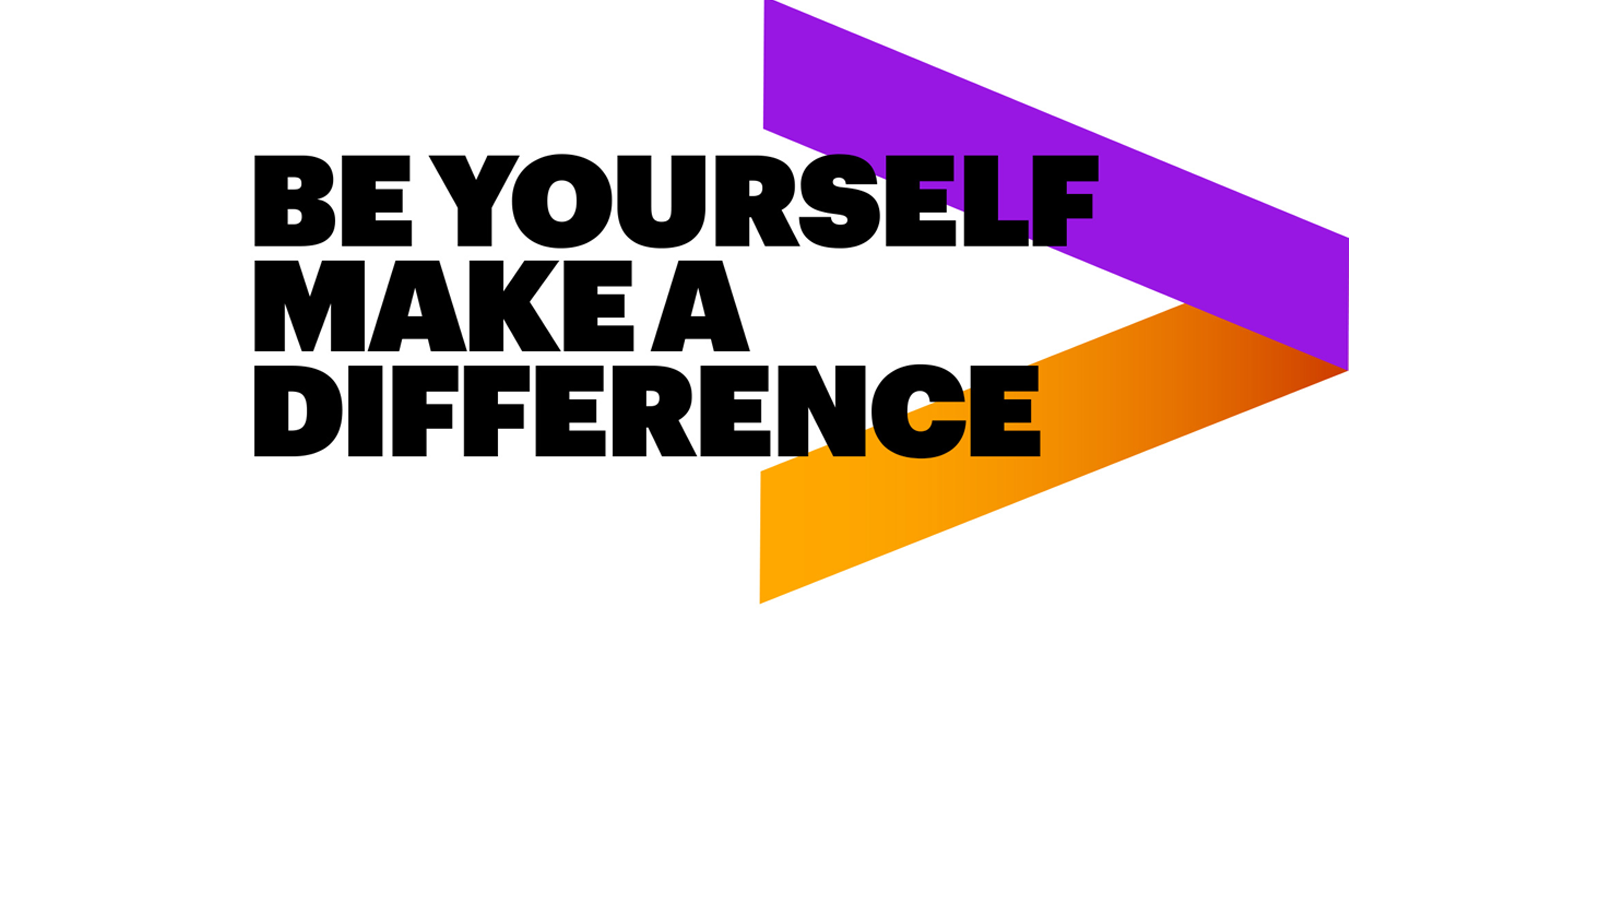 Diversity And Inclusion Quotes Inclusion And Diversity  Accenture